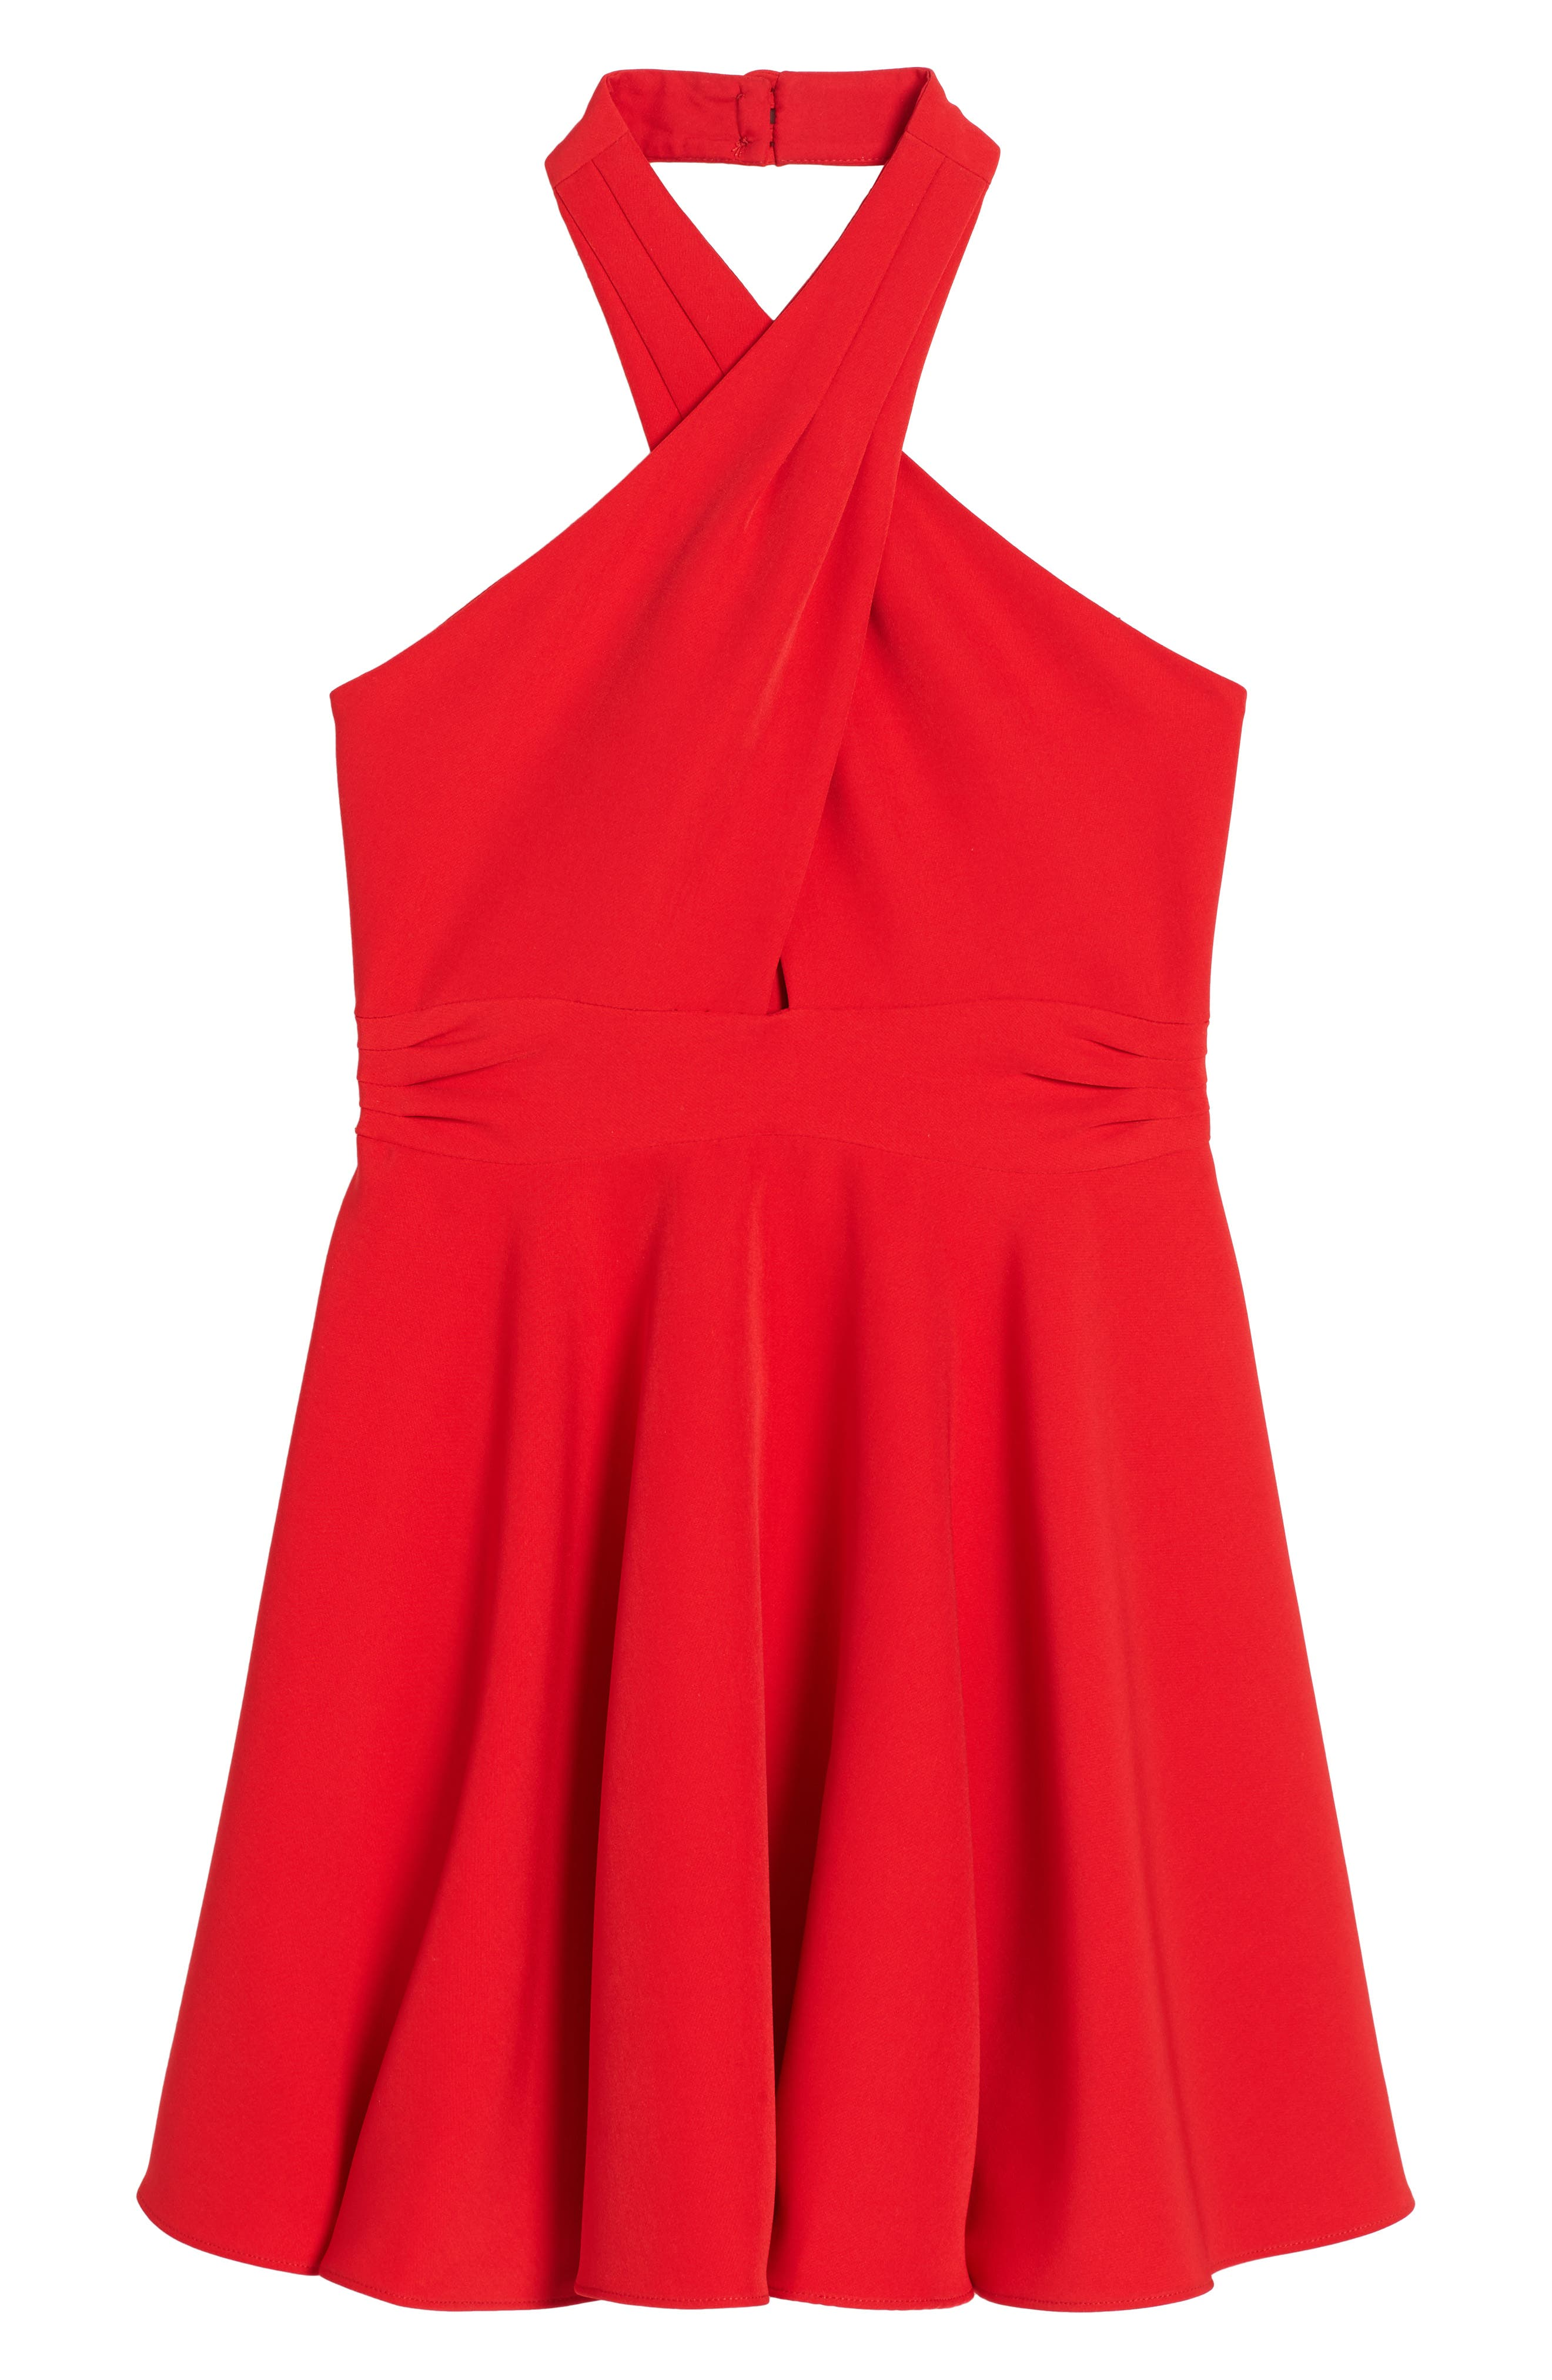 Milly Minis Sydney Halter Dress (Big Girls)